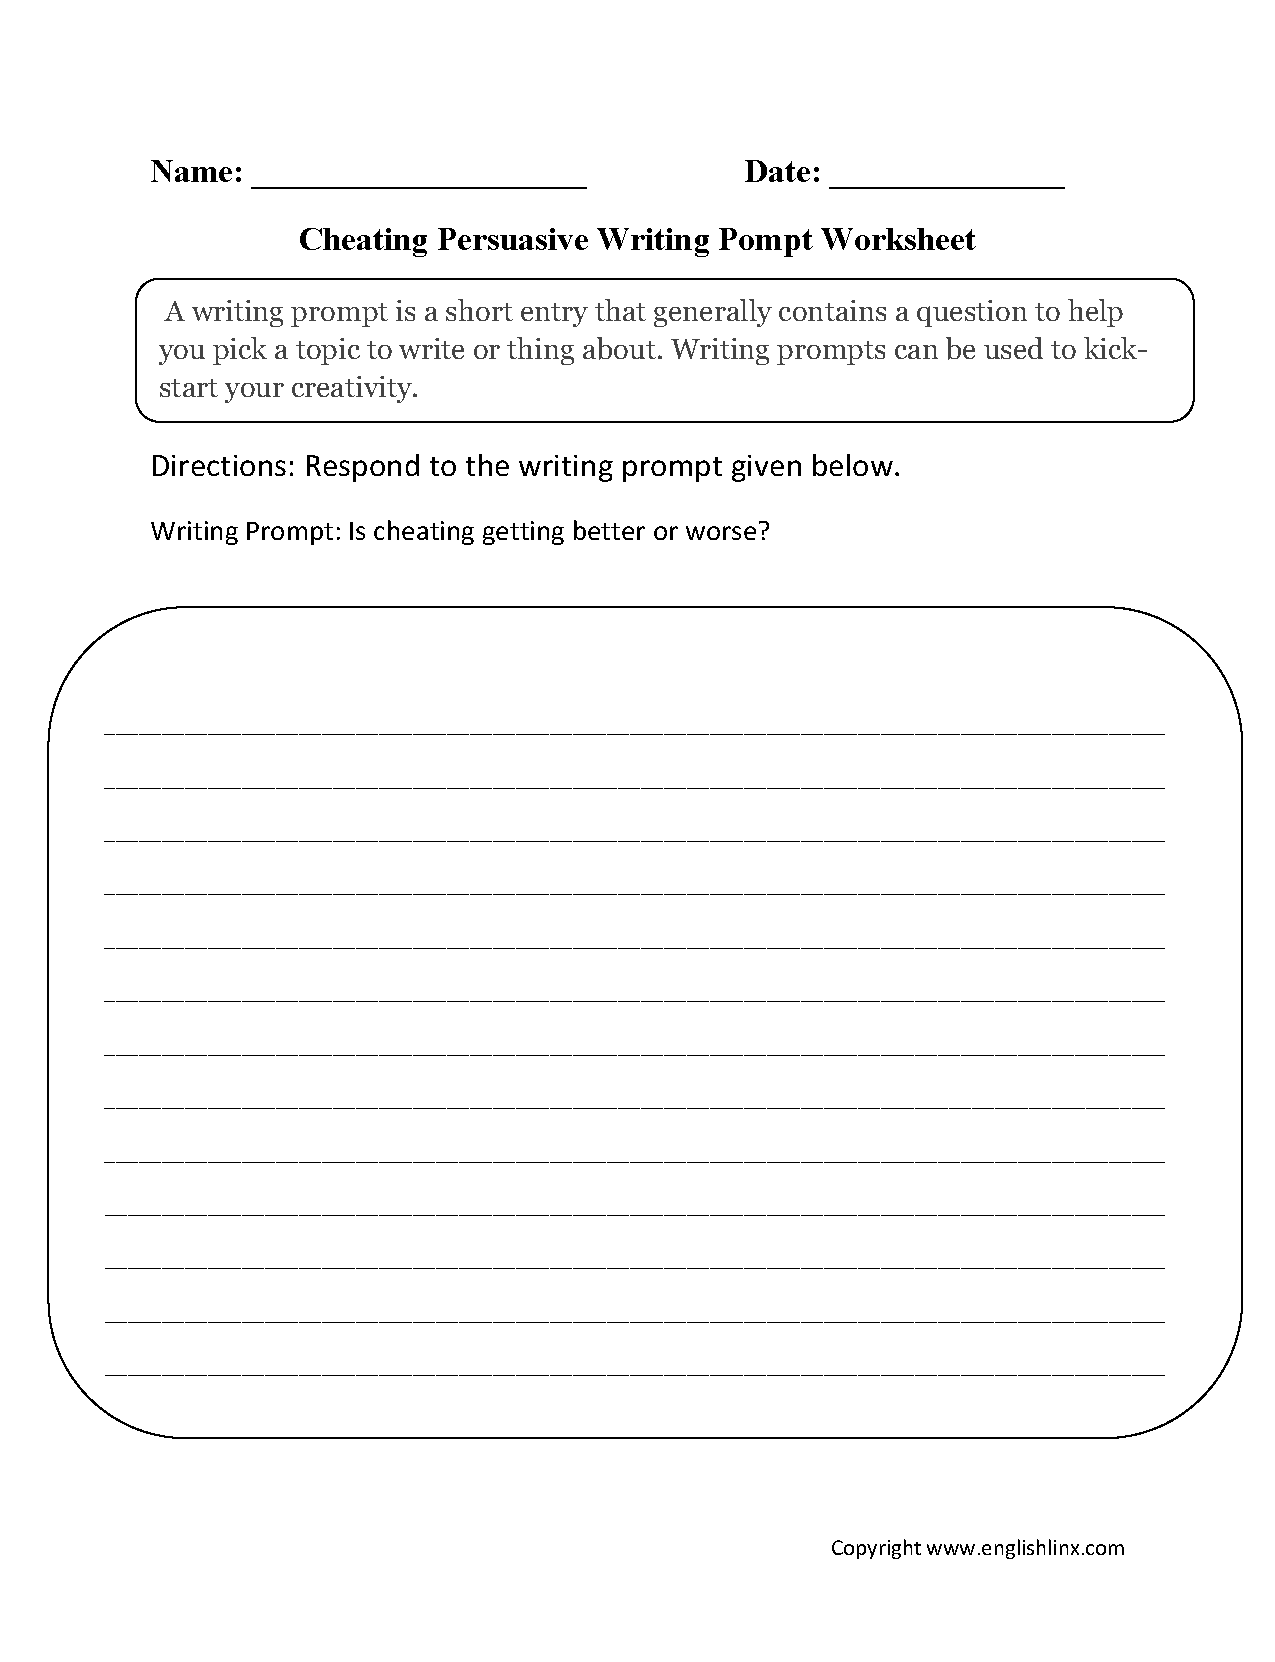 Cheating Persuasive Writing Prompt Worksheets